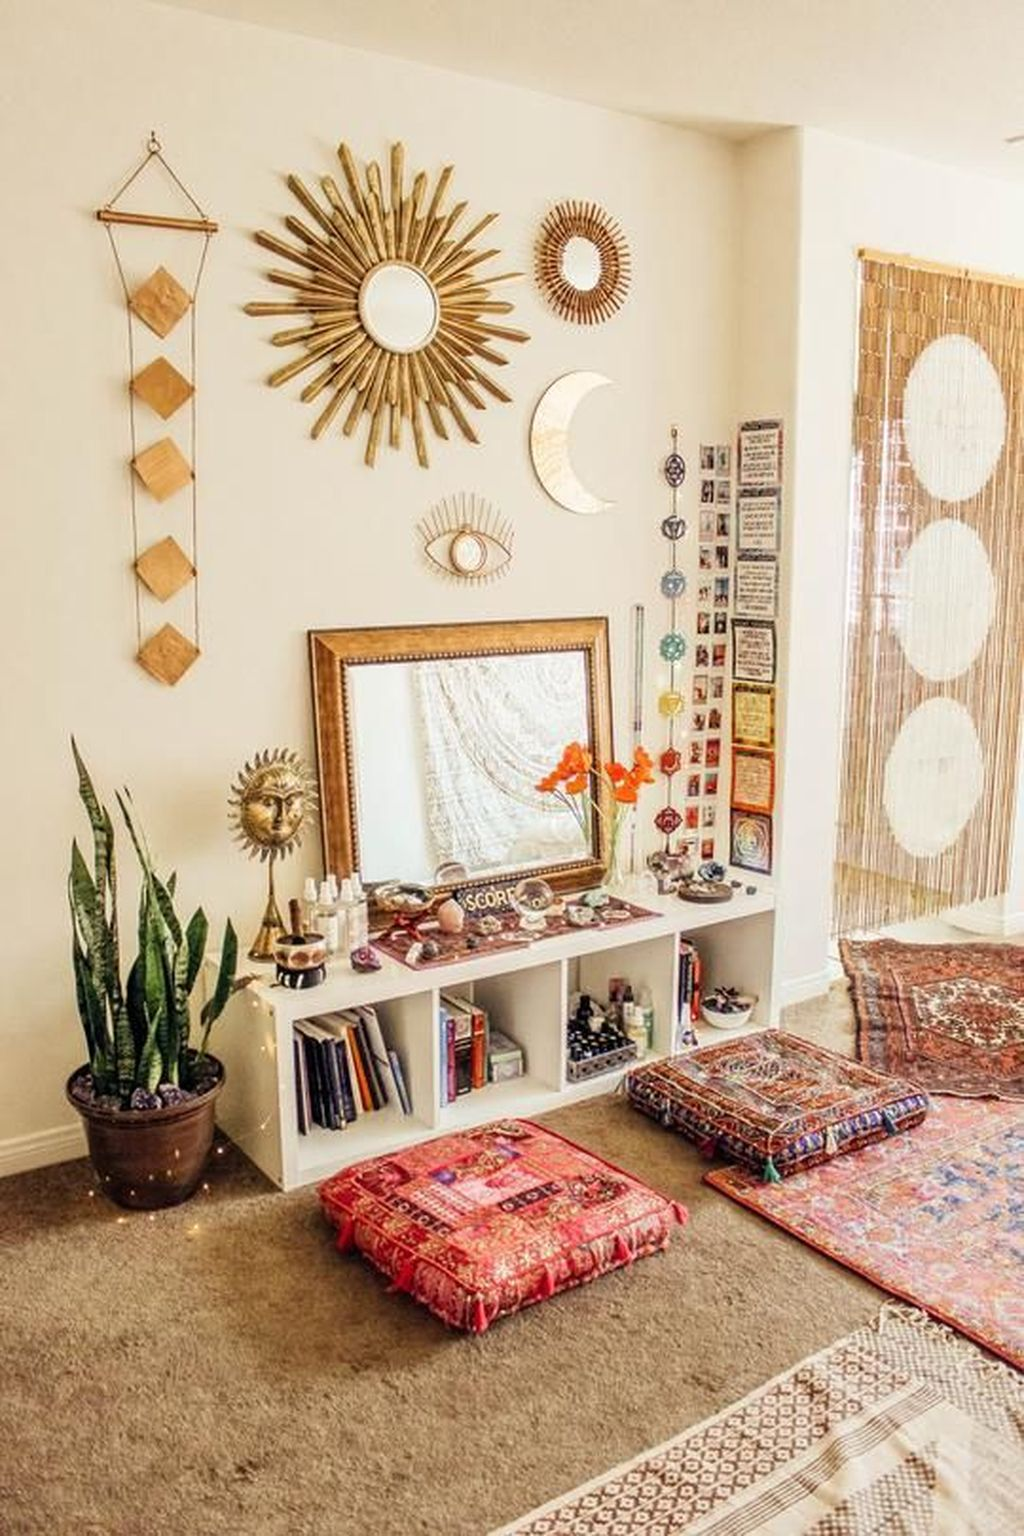 Stunning Hippie Room Decor Ideas You Never Seen Before 01